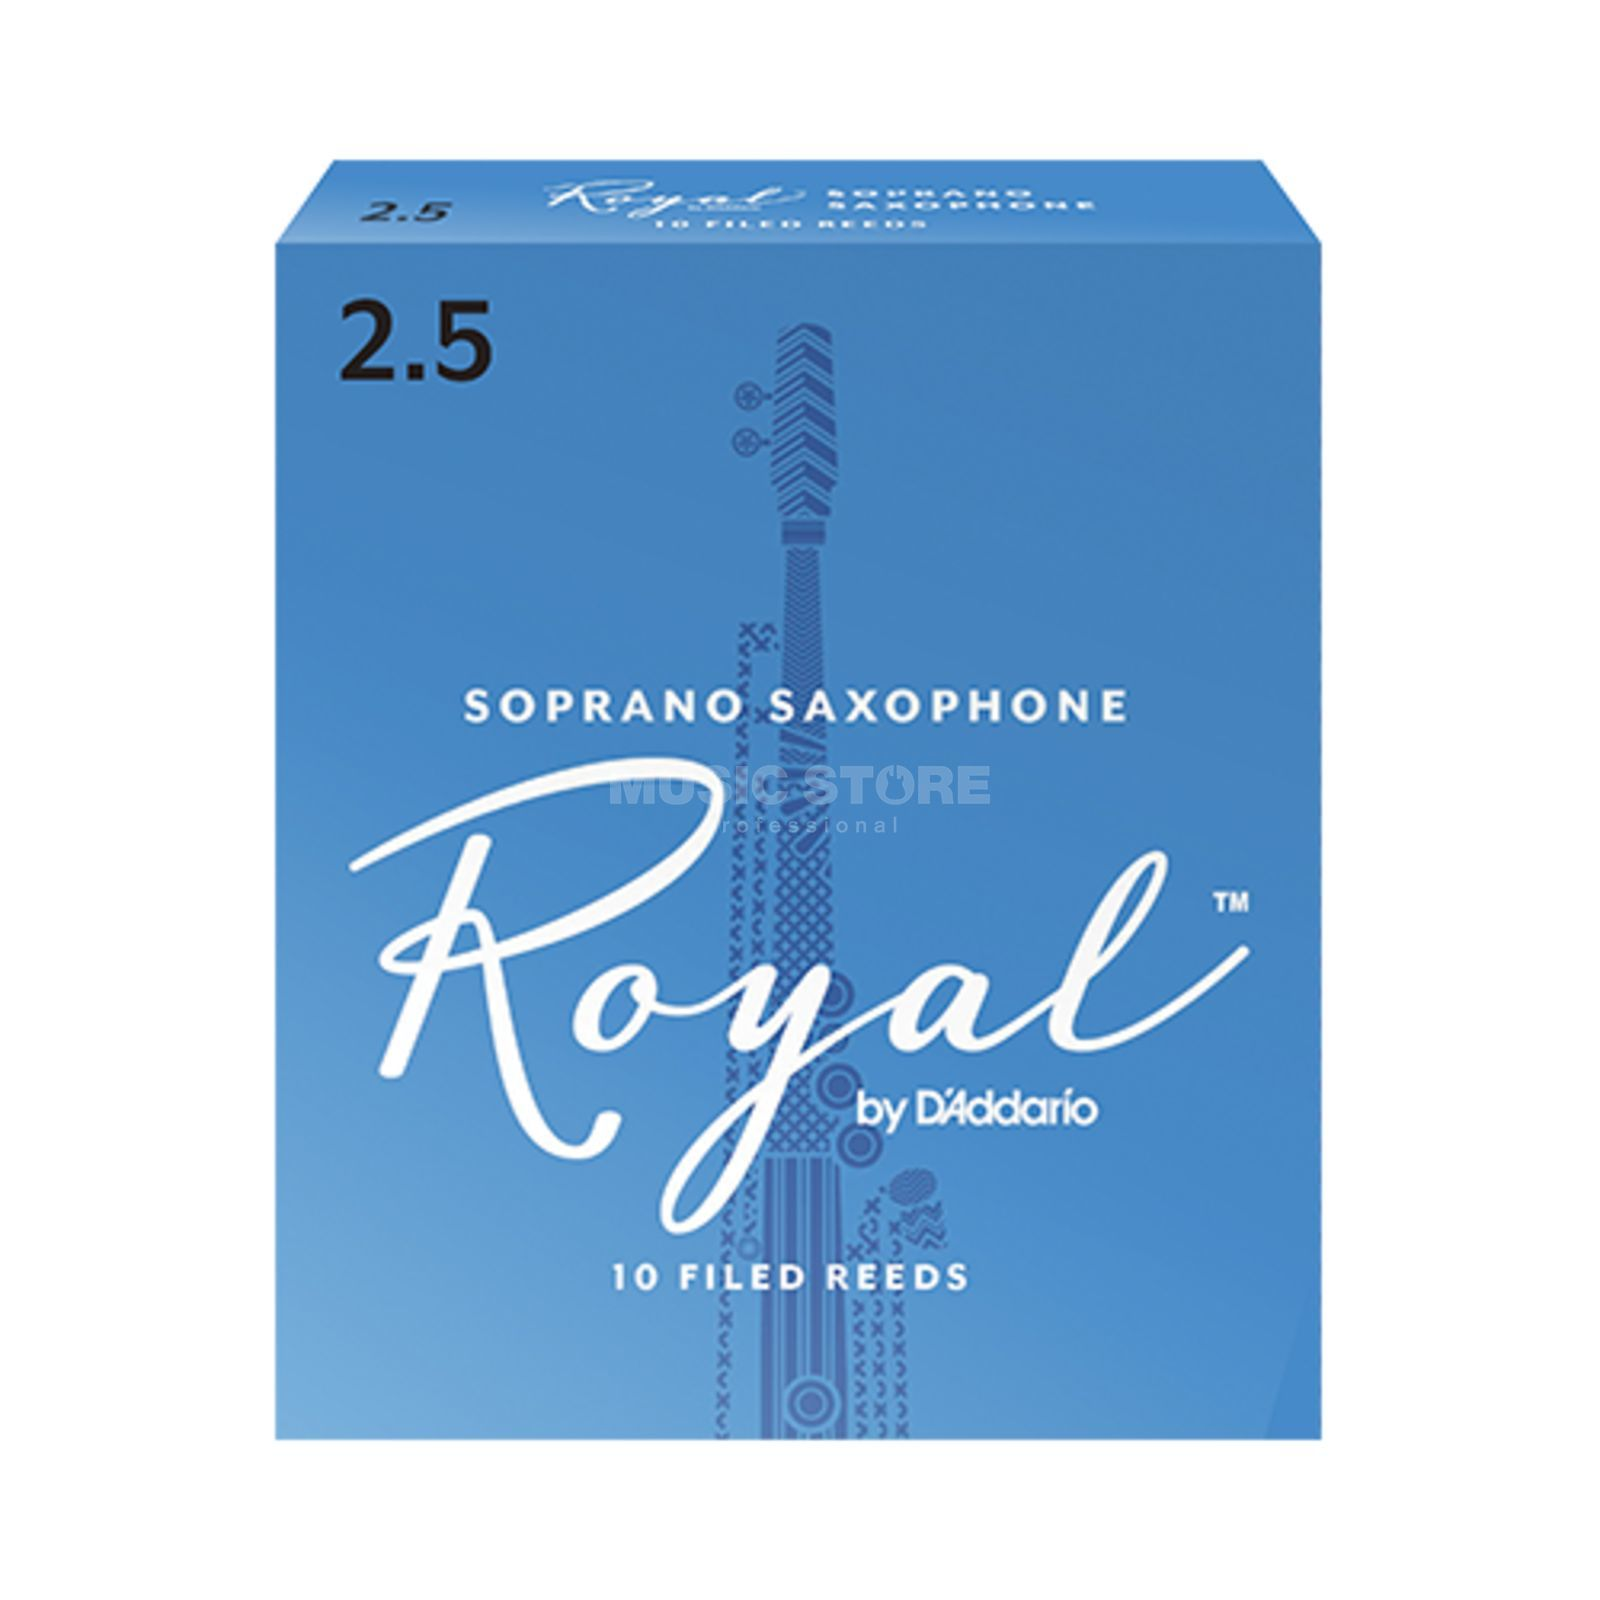 D'Addario Woodwinds Soprano Saxophone Reeds 2.5 Box of 10 Изображение товара